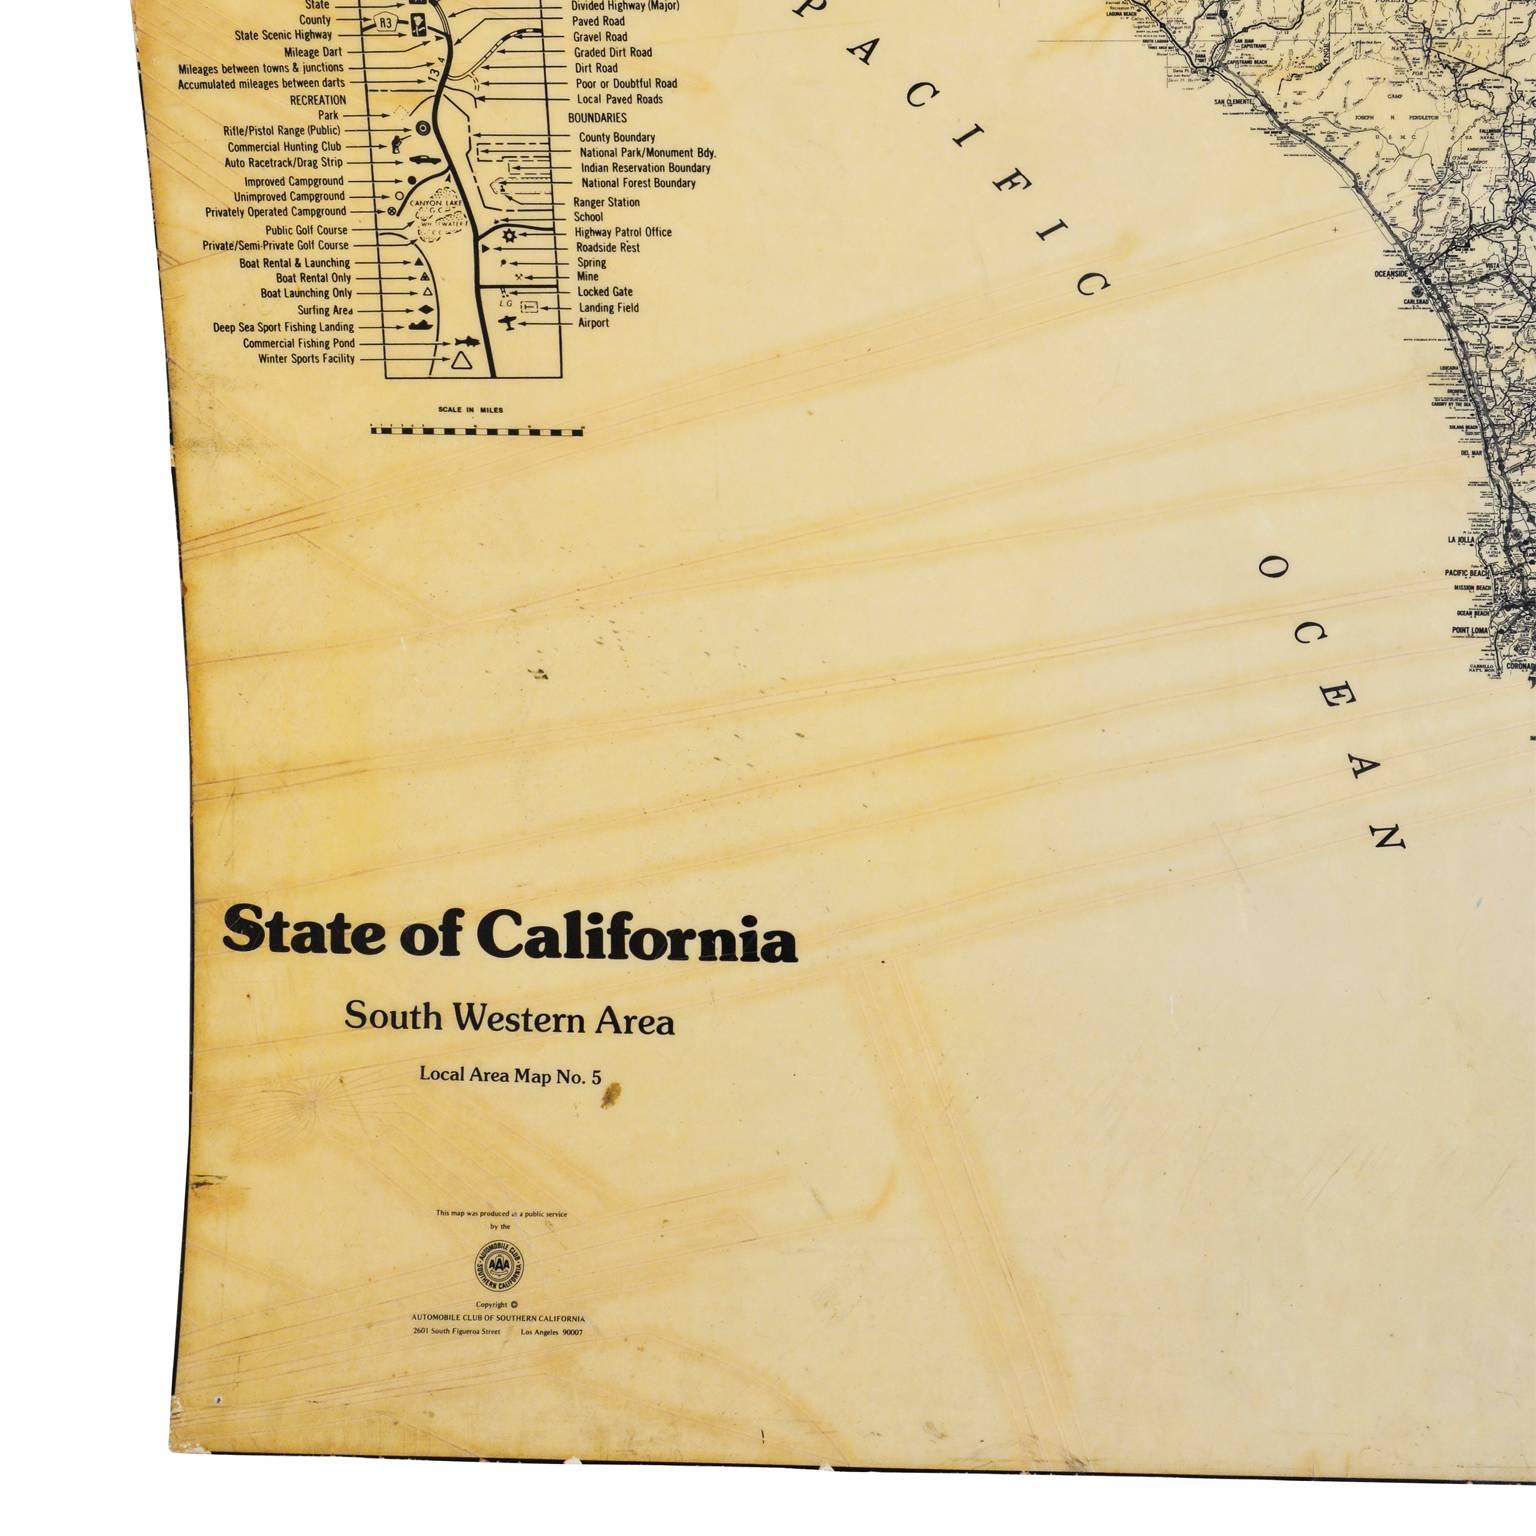 Map of California South Western Area by AAA Automotive Club